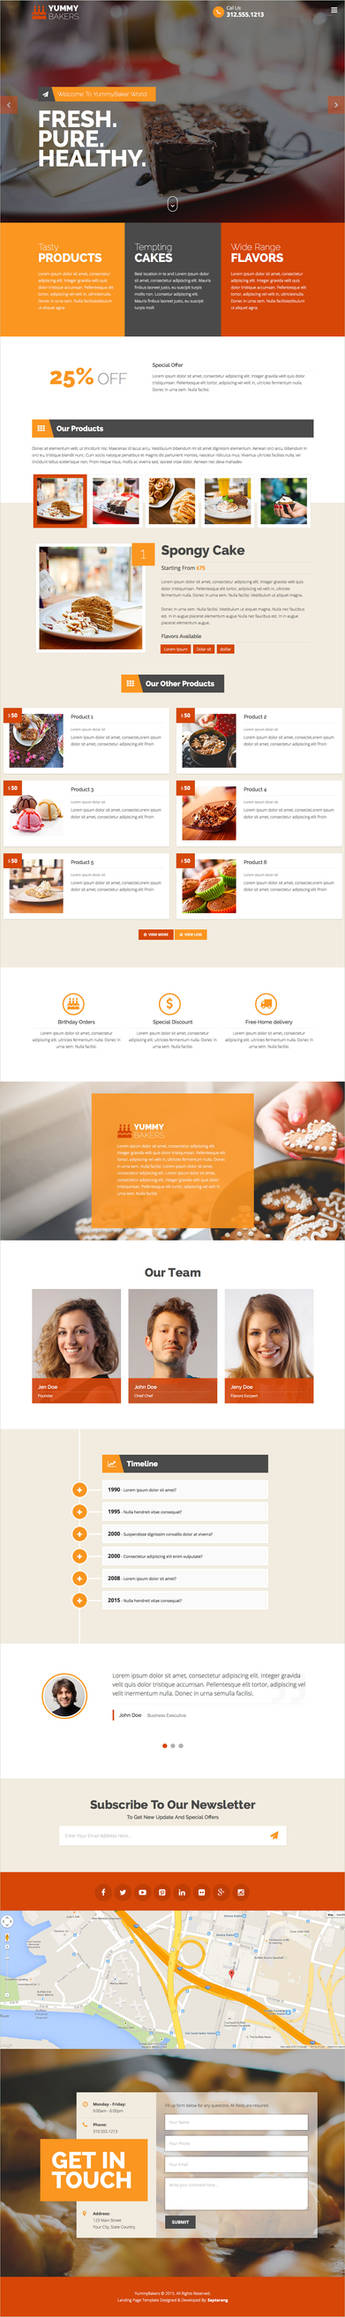 Products Services Landing Page by Saptarang